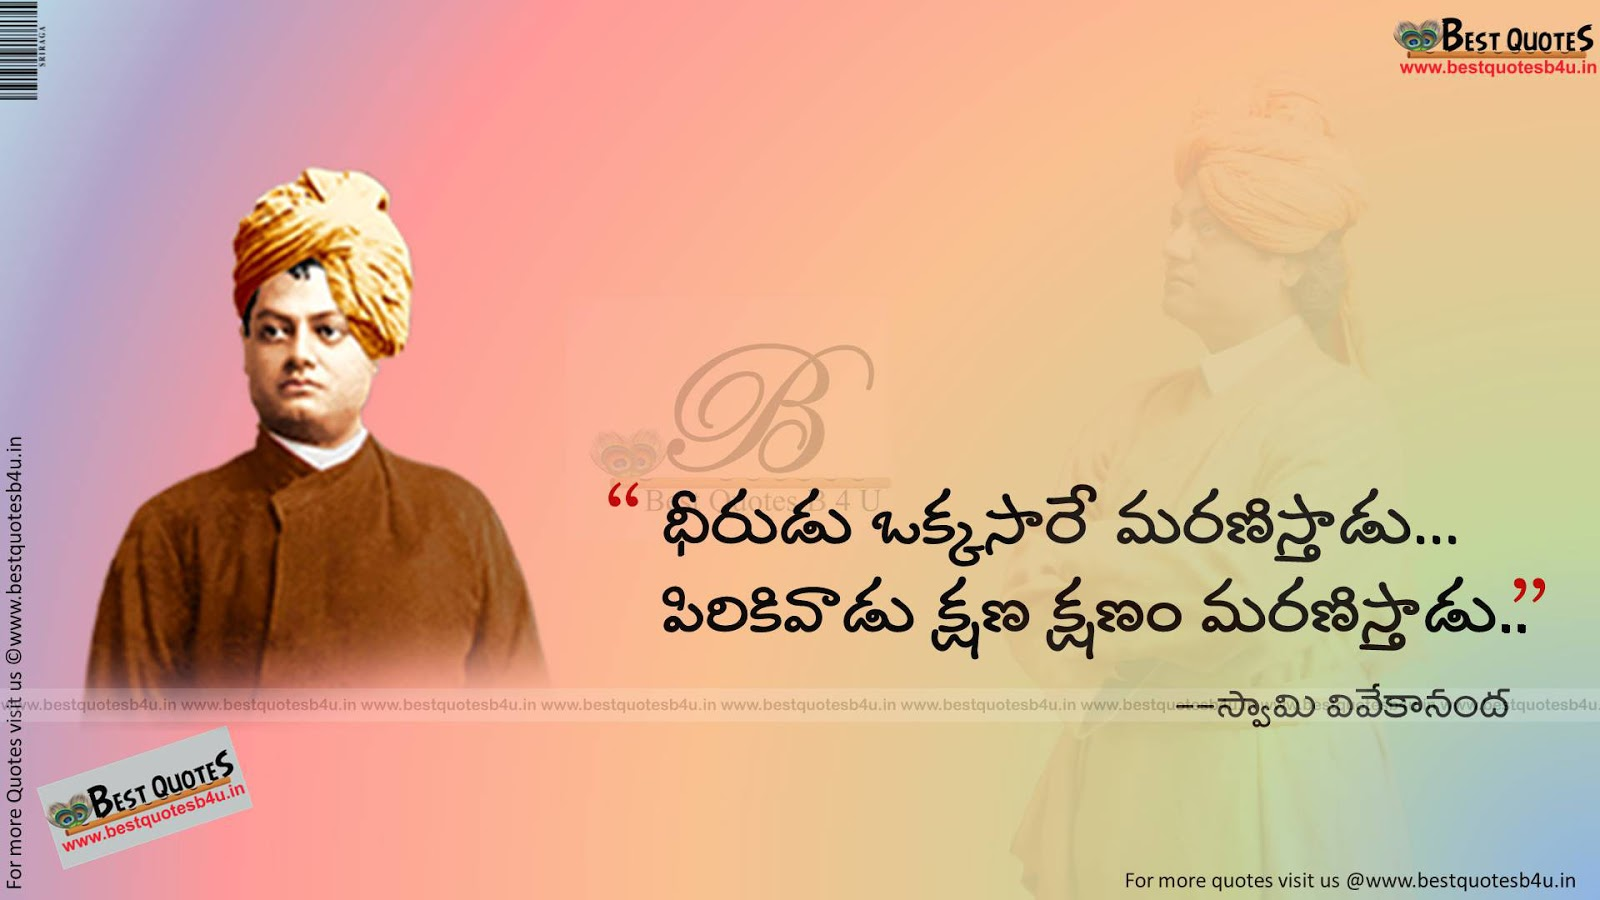 essays swami vivekananda a true patriot essay on the legacy of swami vivekananda swami vivekananda as we all know is the greatest hindu monk who has brought a massive change during the 19th century he was born in 1863 in kolkata and continued his studies there.